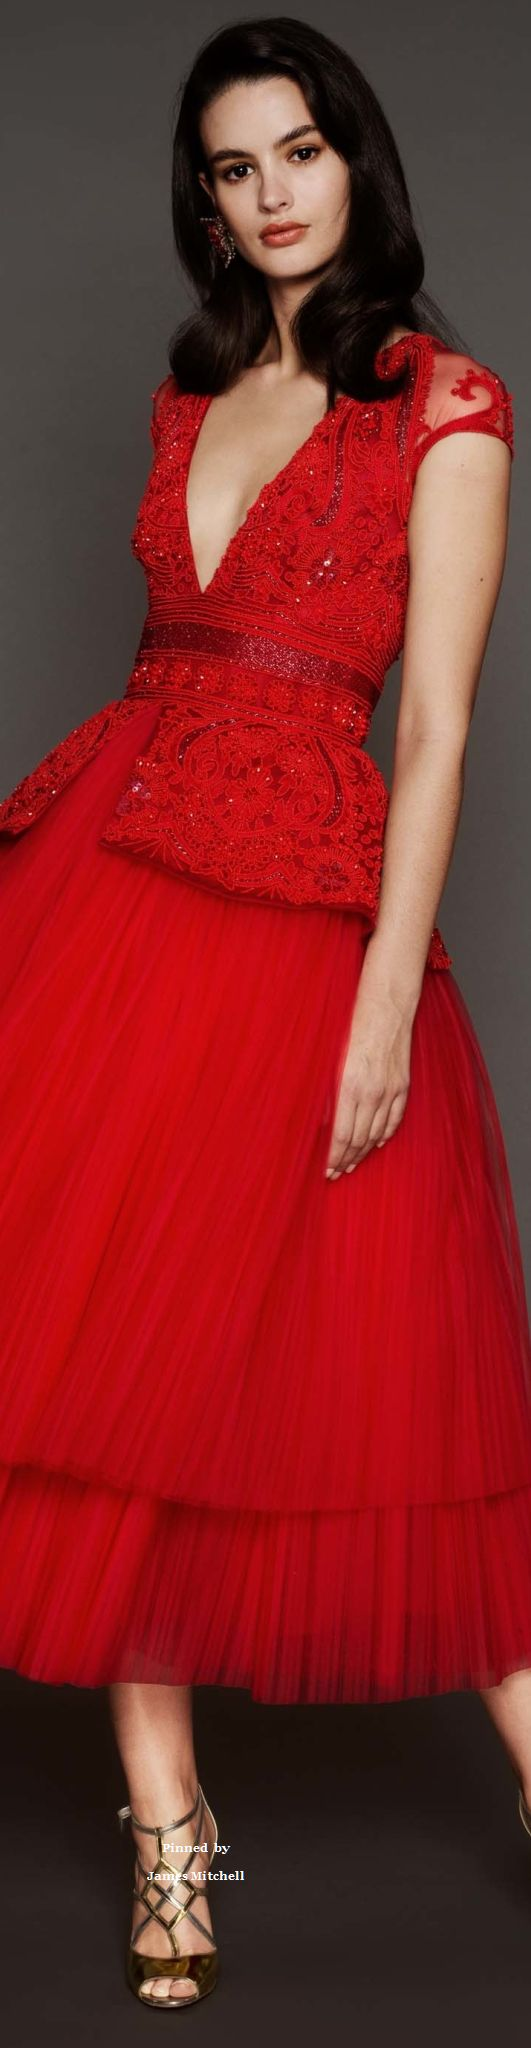 Naeem khan collections prefall collection i love red